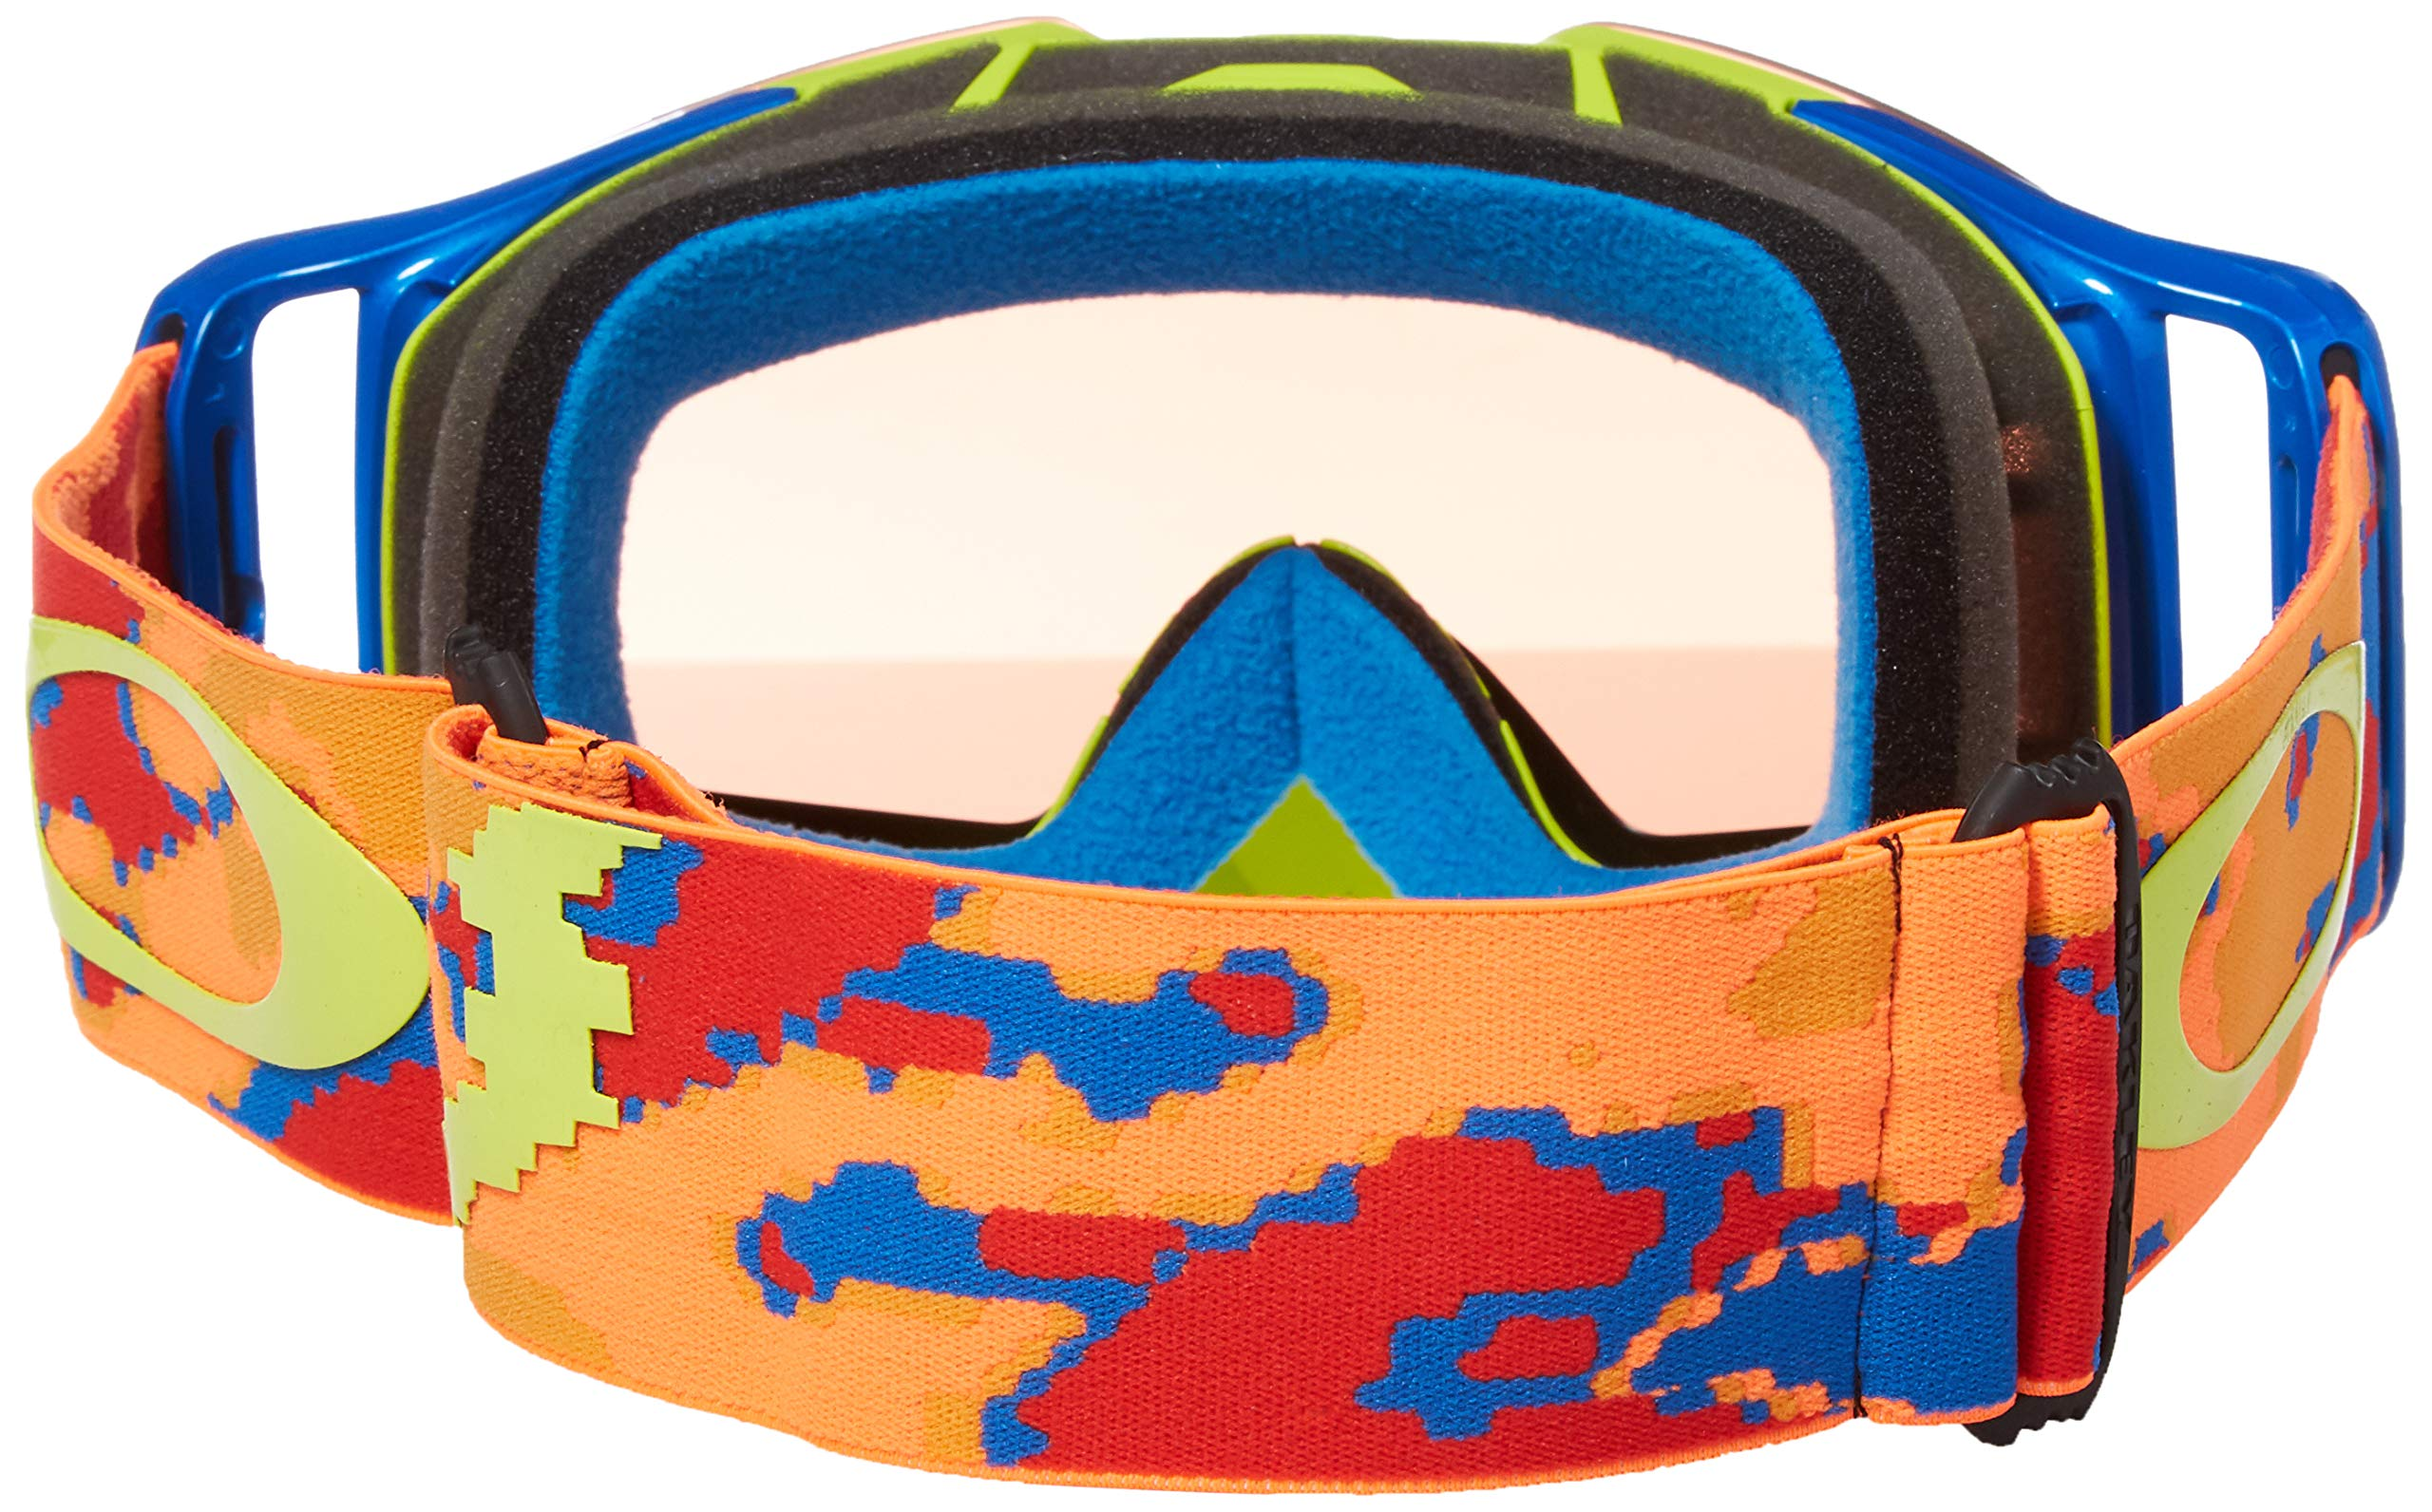 Oakley OO7087-14 FL MX Thermocamo Unisex-Adult Goggles, Large, Orange/Red by Oakley (Image #4)